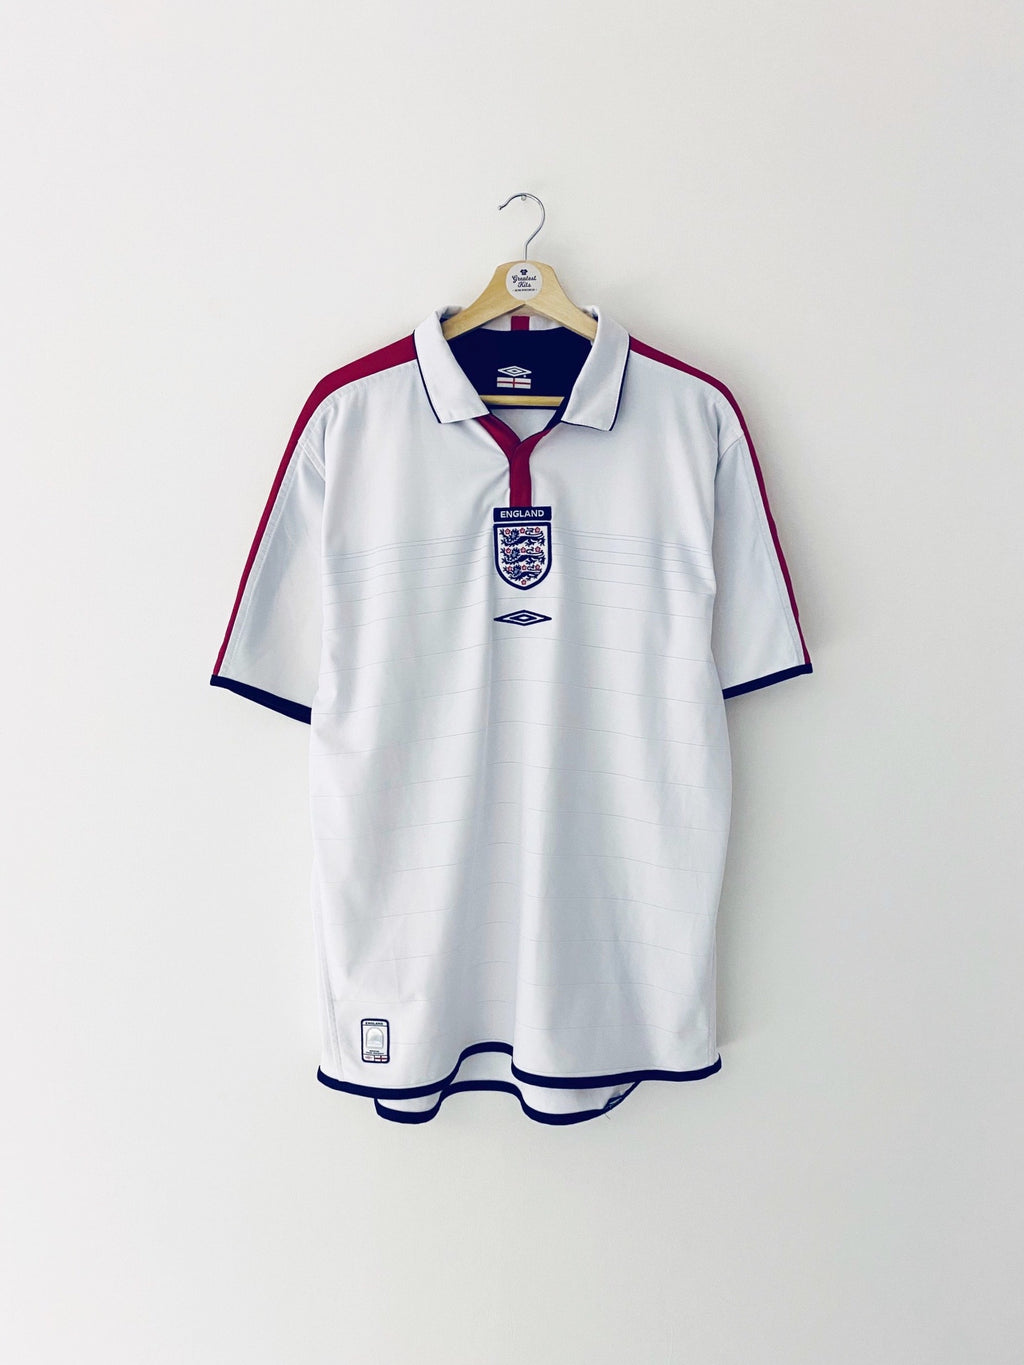 2003/05 England Home Shirt (L) 8.5/10